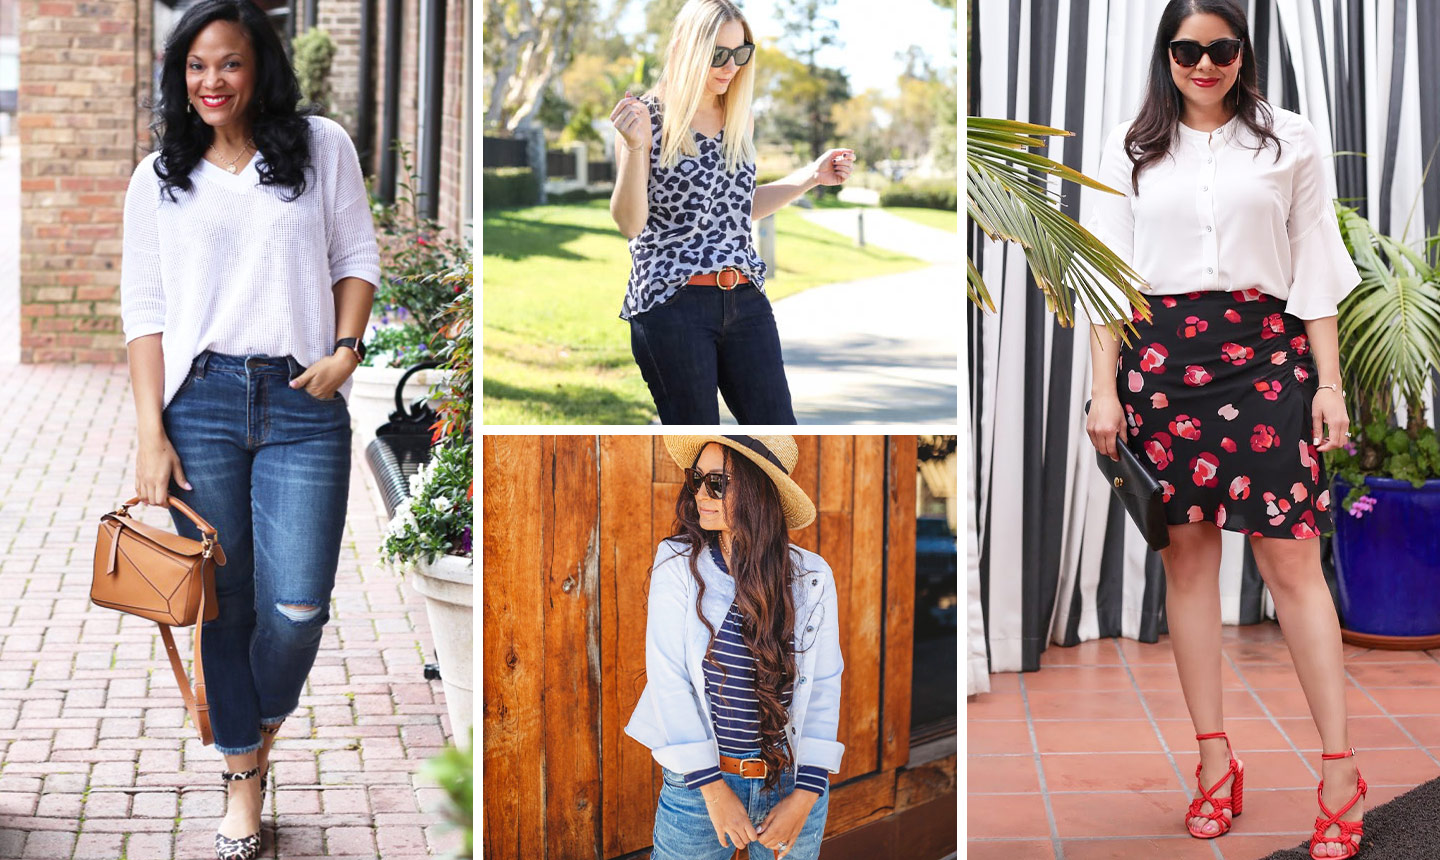 style blog posts that we simply love - Cabi Fall 13 Collection